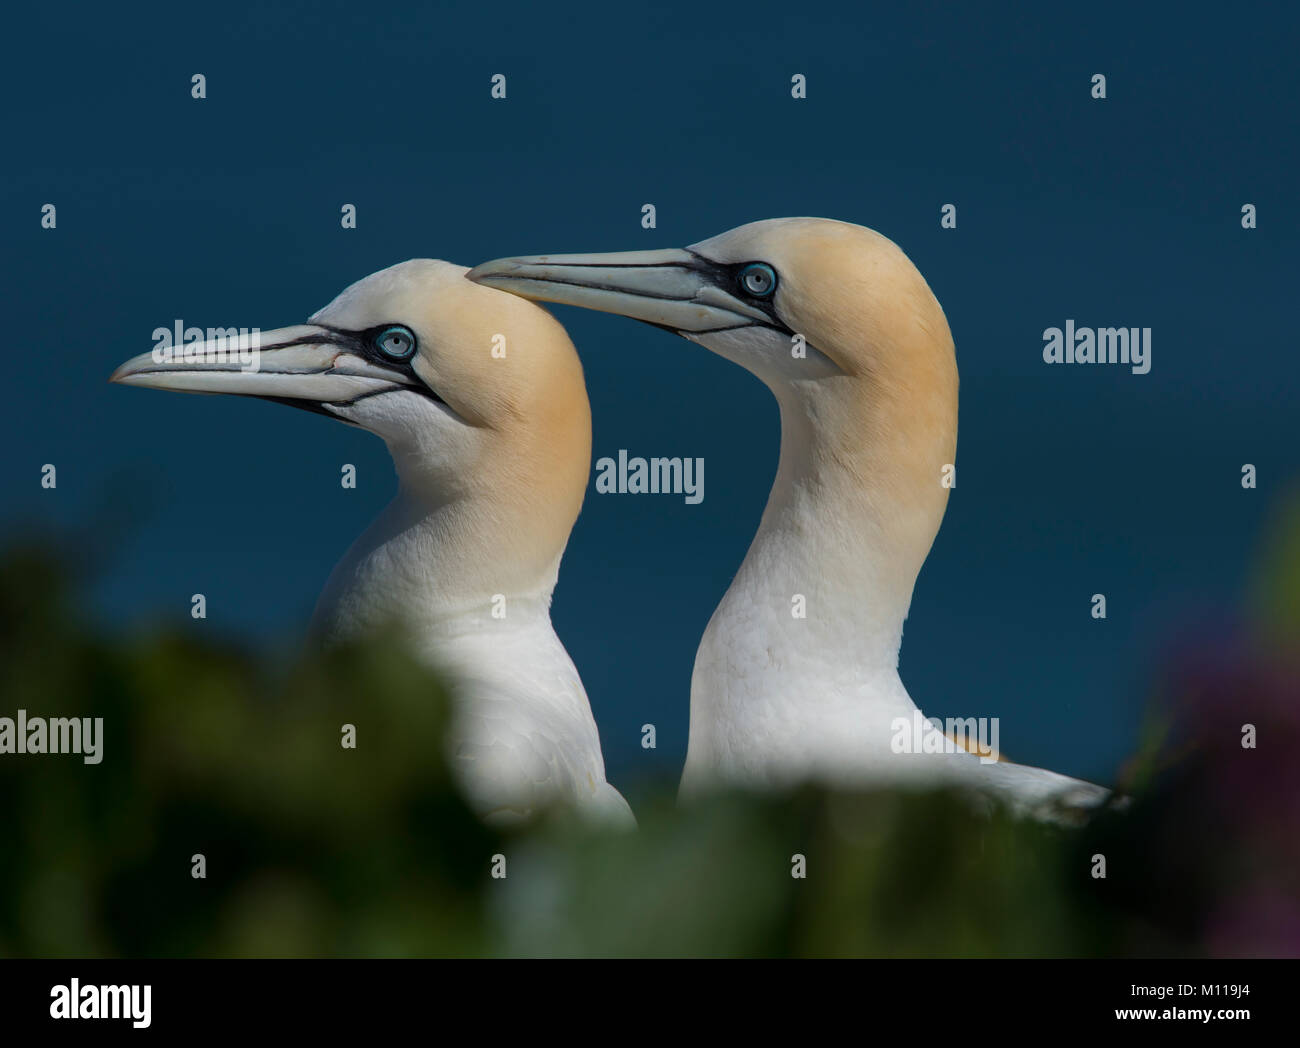 Pair of Northern Gannet Morus bassanus beak fencing in courtship display on a Northern England cliff ledge. - Stock Image